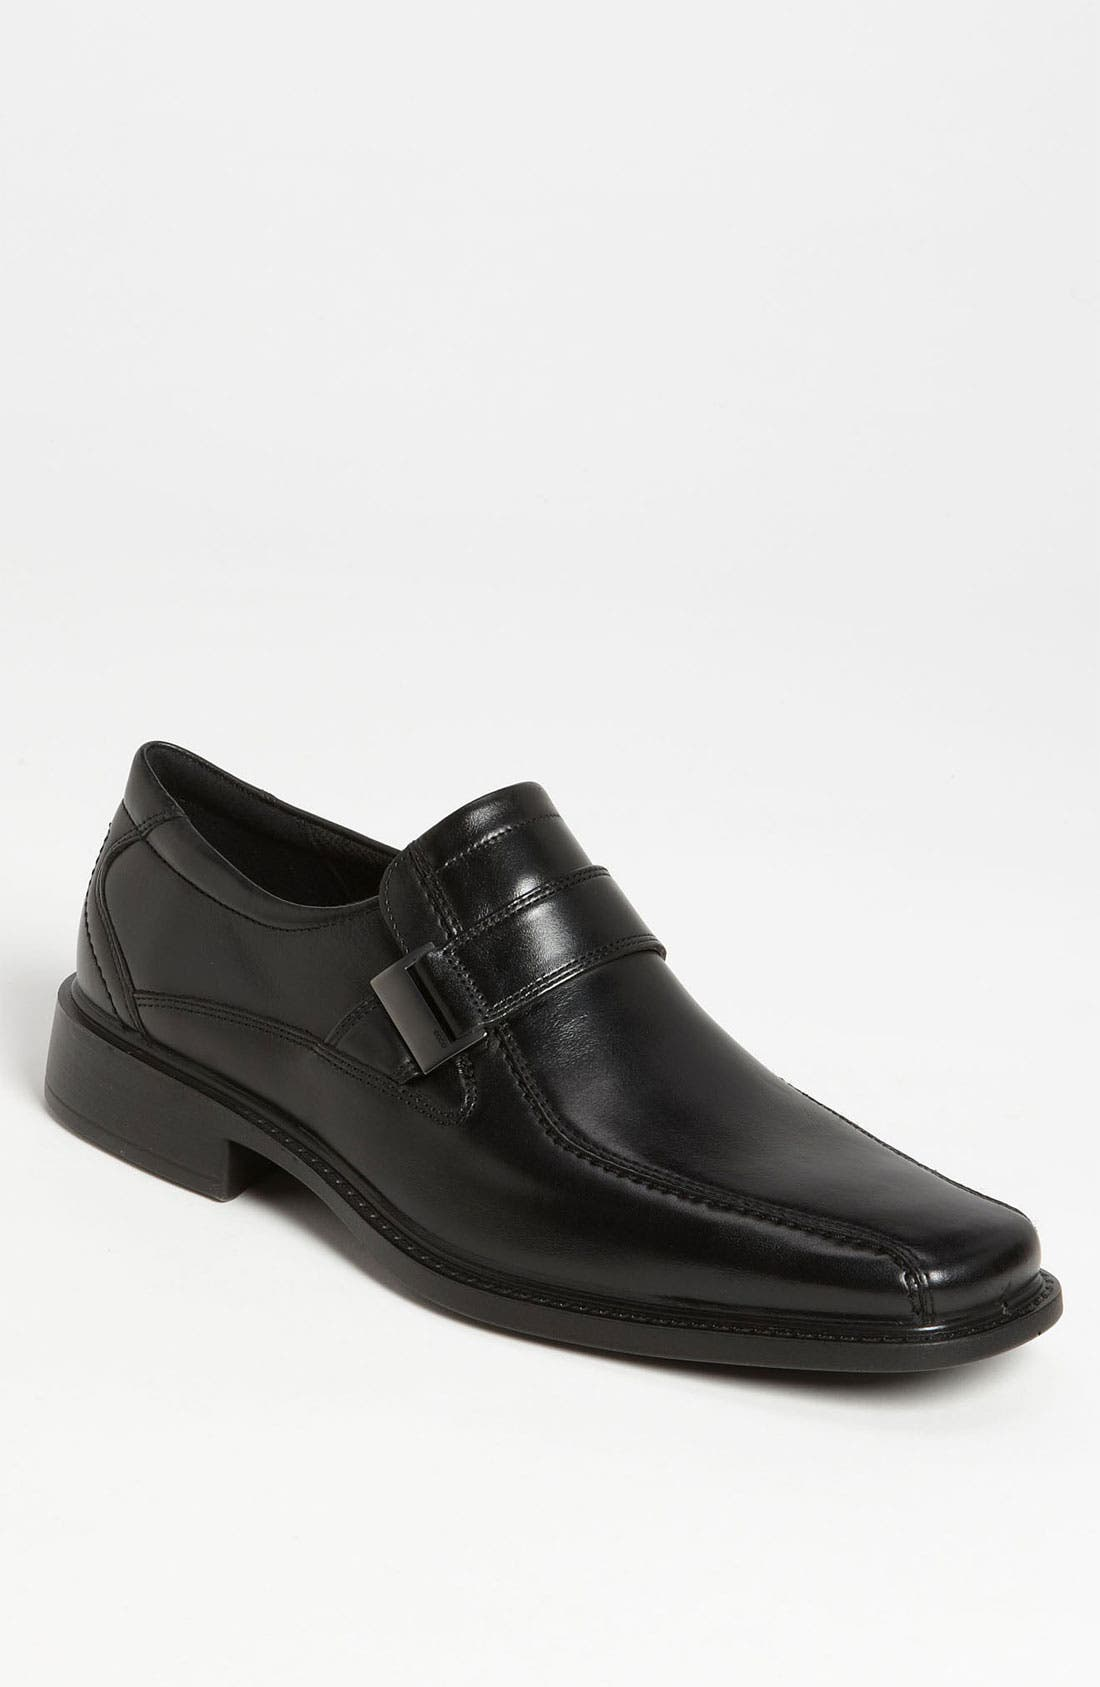 Alternate Image 1 Selected - ECCO 'New Jersey' Venetian Loafer